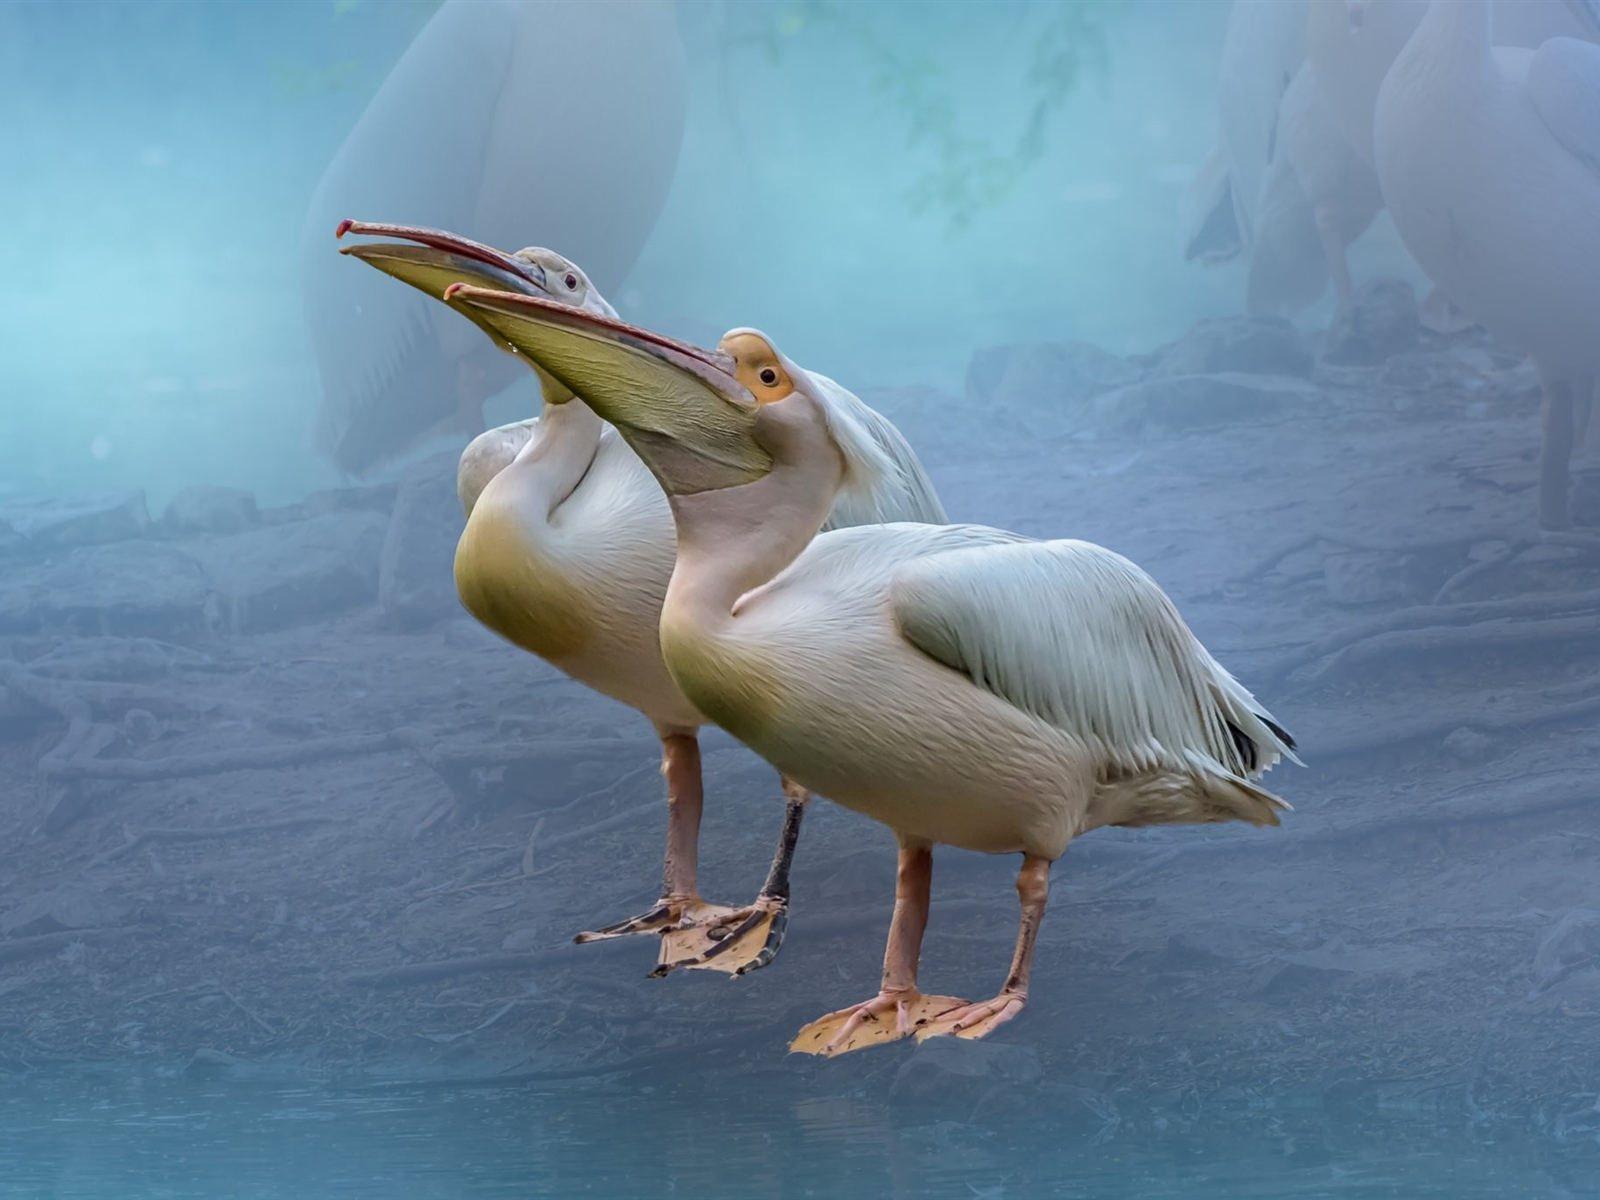 Two pelicans 1600x1200 wallpaper